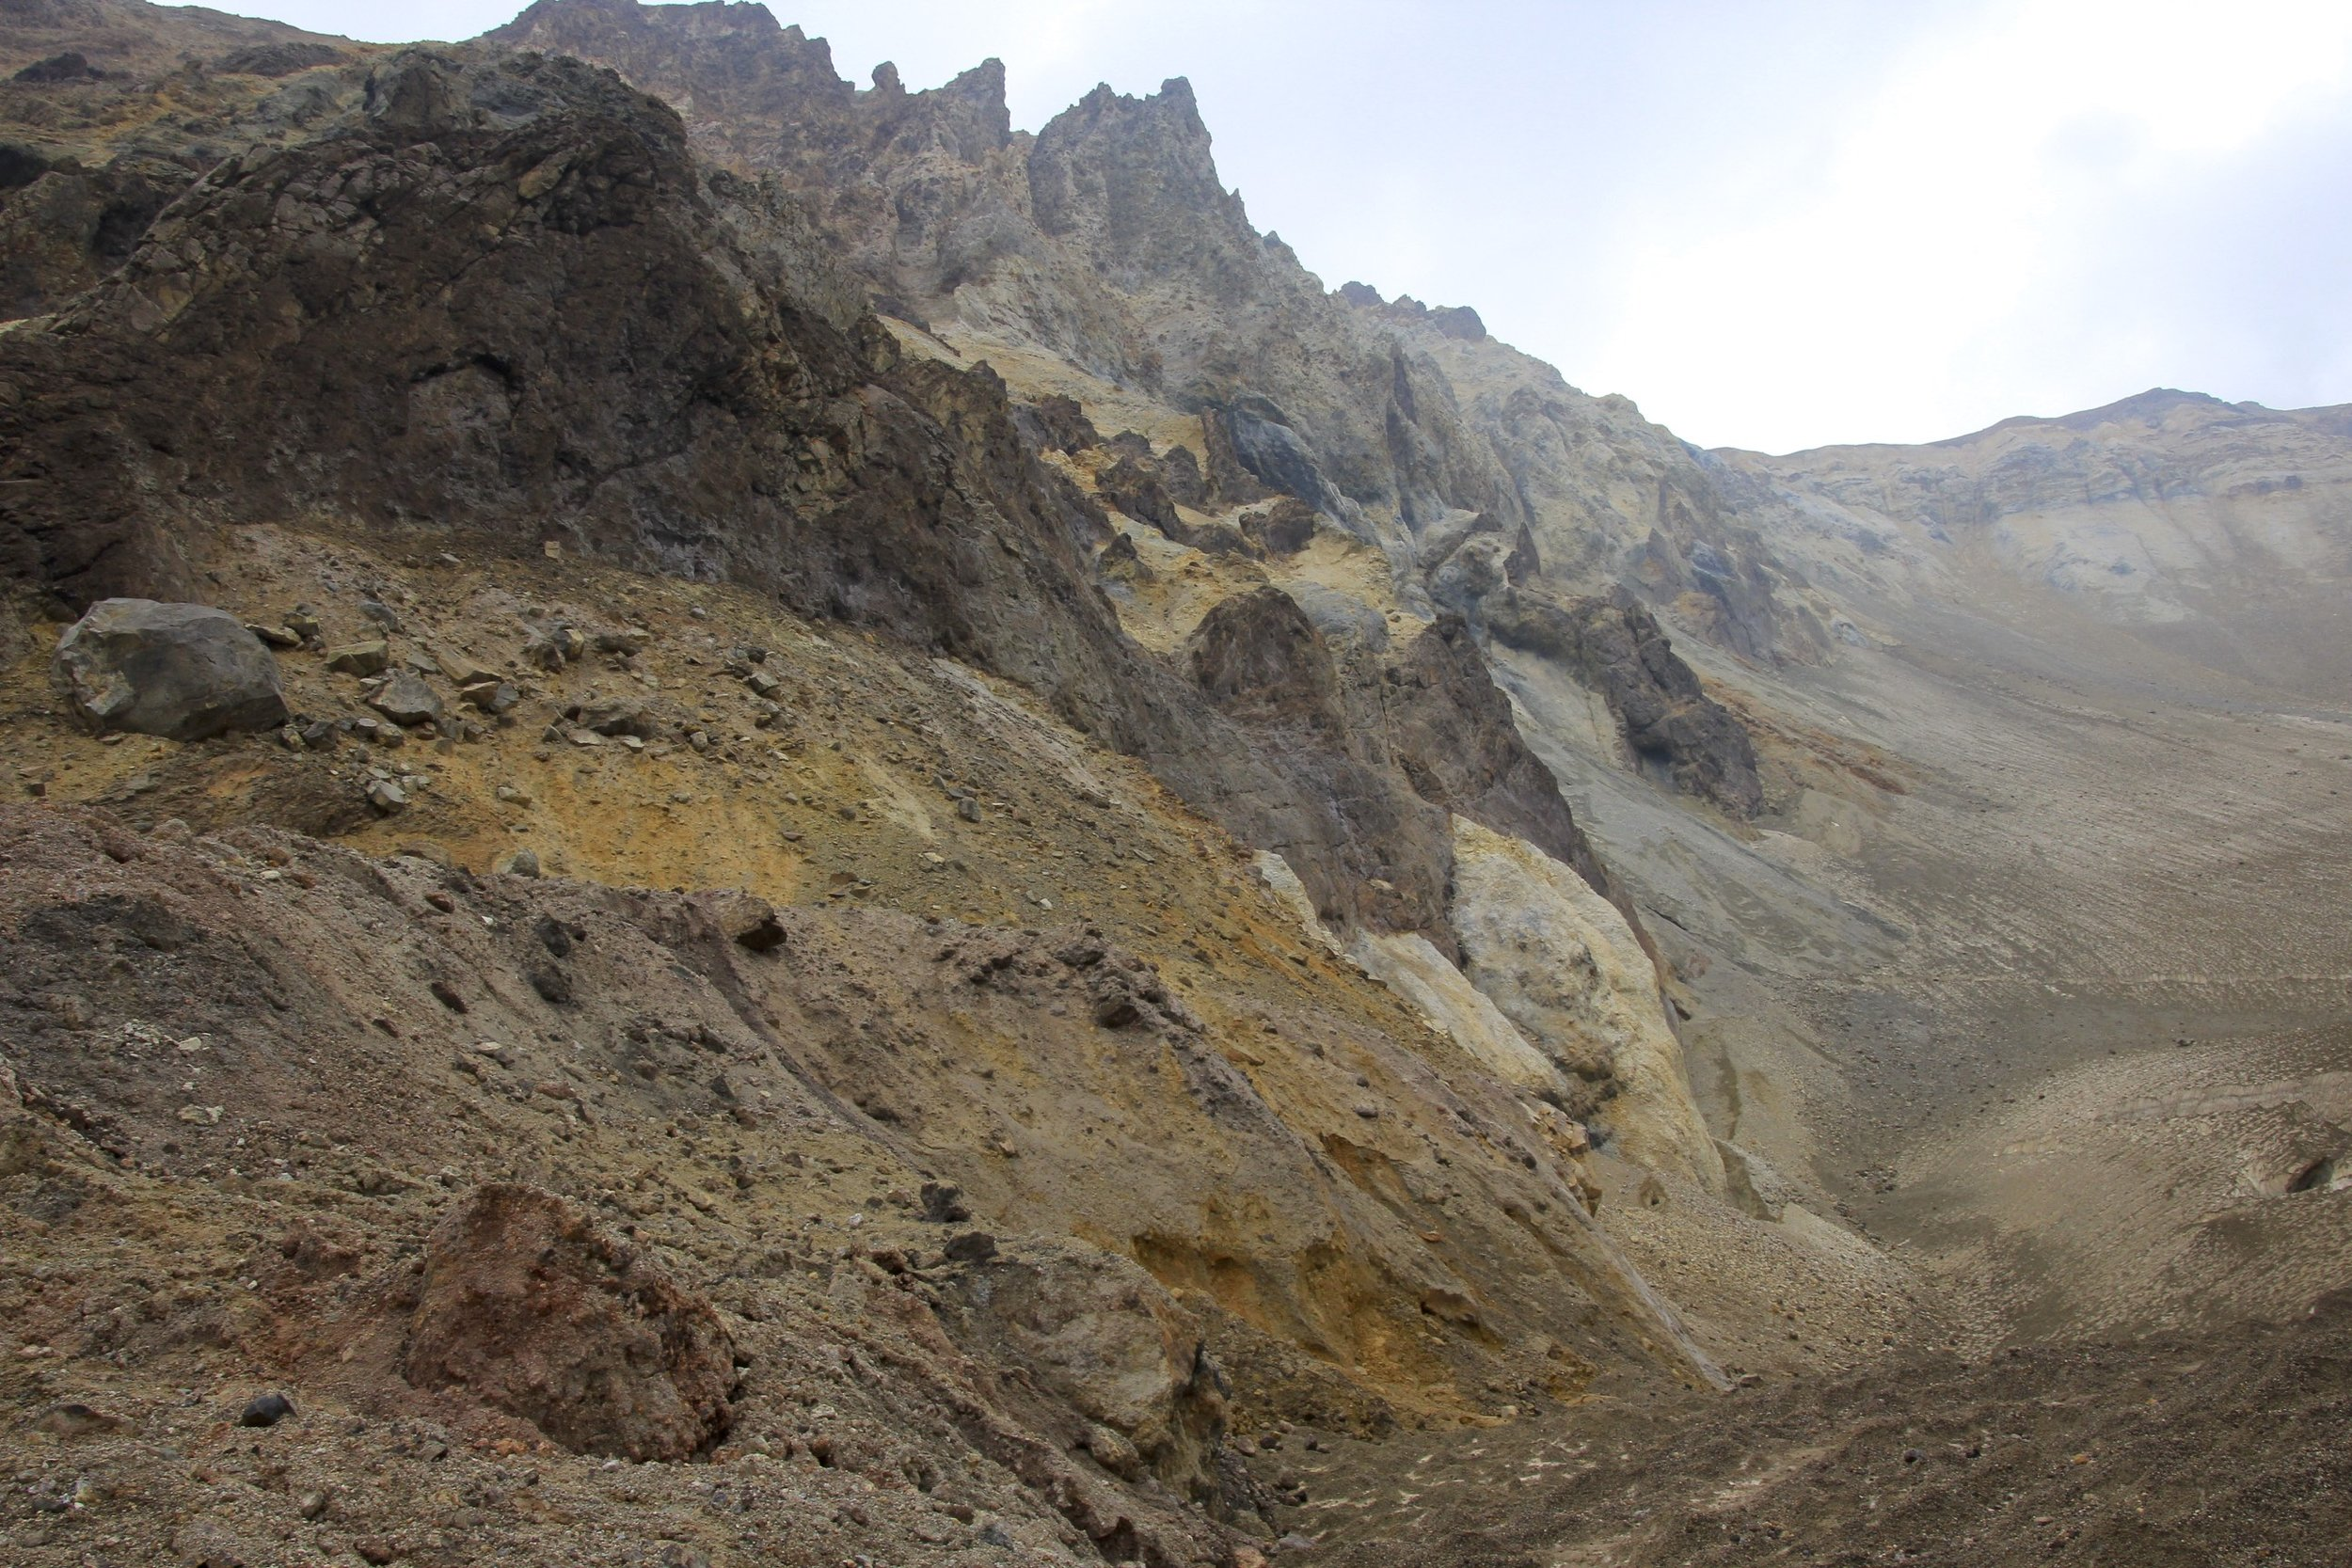 Massive walls of the crater. It felt like we were inside a castle from the Lord of the Rings.